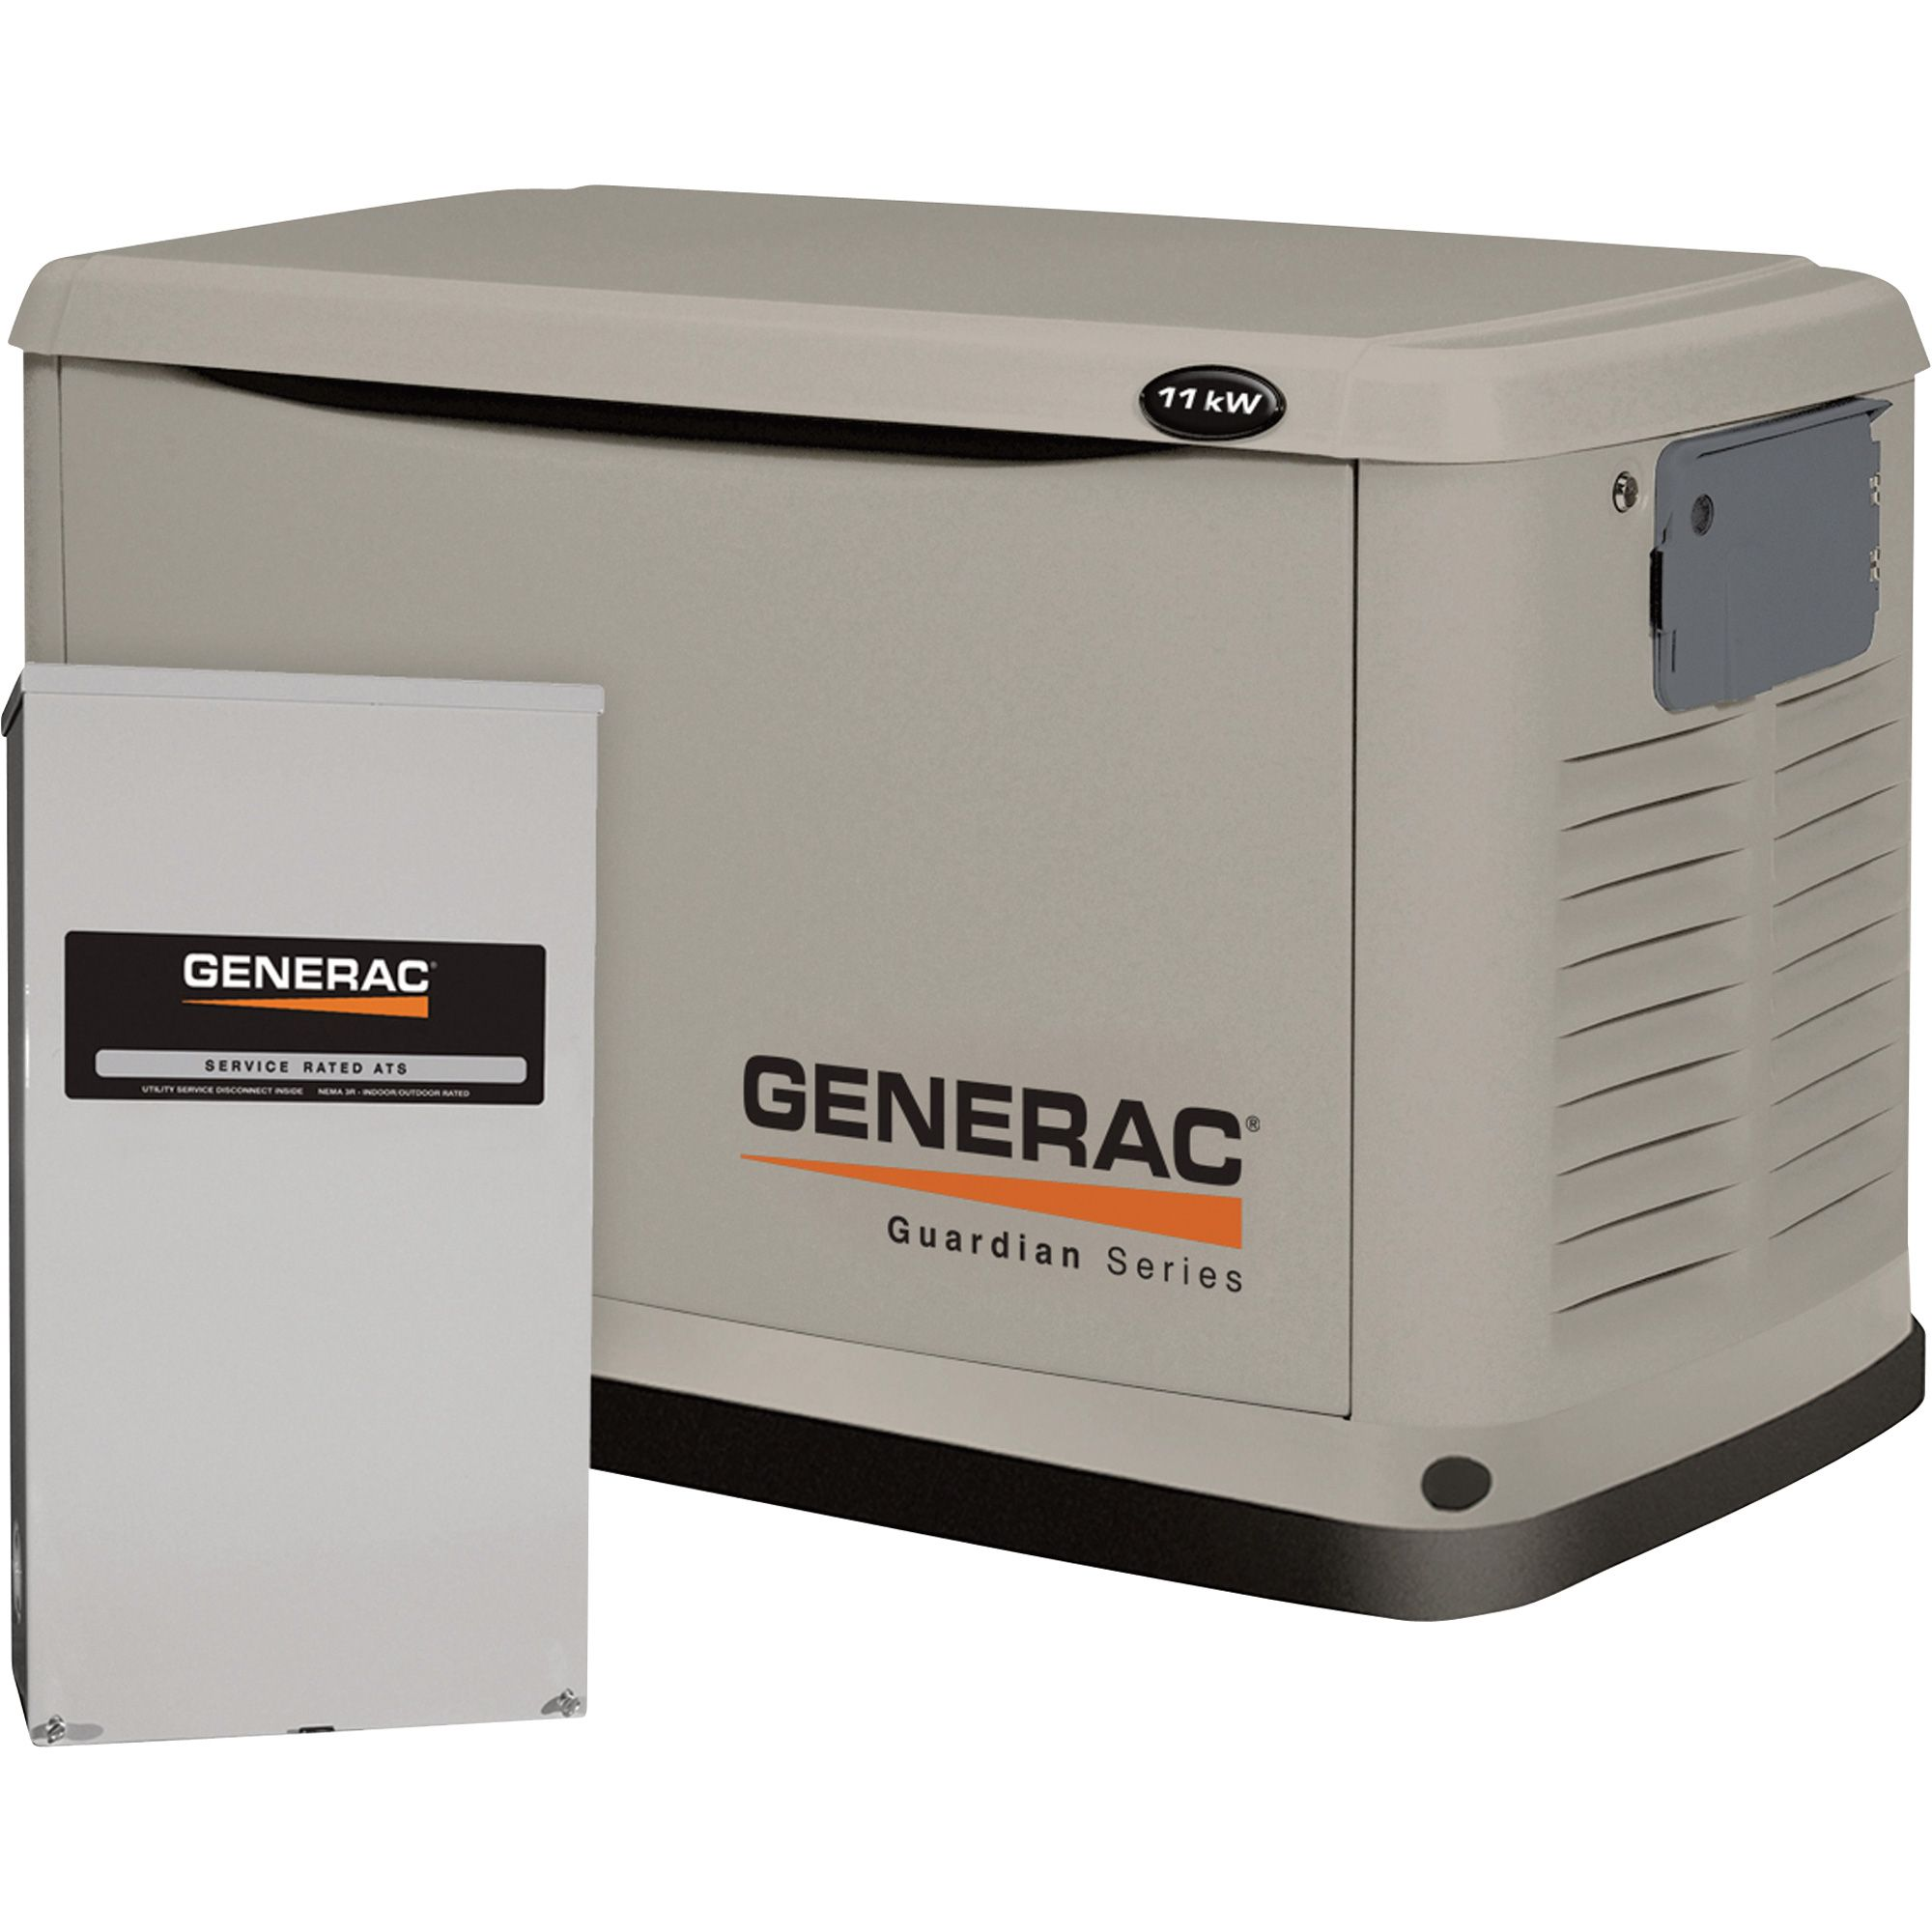 Free Shipping Generac Guardian Air Cooled Standby Generator 11kw Lp 10kw Ng 200 Amp Service Generator House Standby Generators Whole House Generators